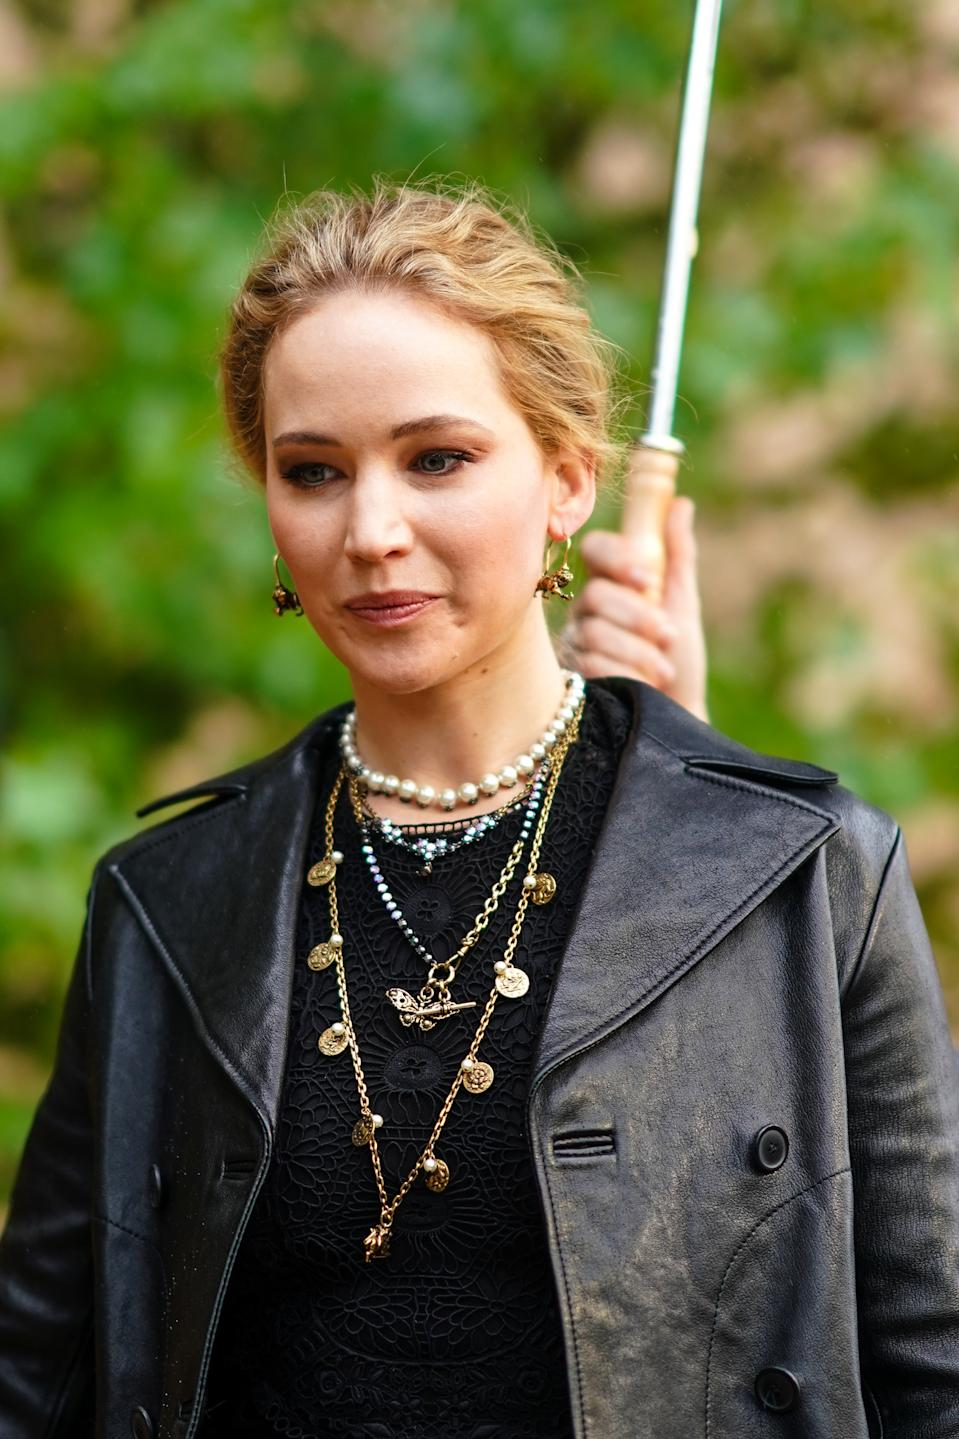 PARIS, FRANCE - SEPTEMBER 24: Jennifer Lawrence wears earrings, necklaces, a black lace crop top, a black leather jacket,  outside Dior during Paris Fashion Week - Womenswear Spring Summer 2020, on September 24, 2019 in Paris, France. (Photo by Edward Berthelot/Getty Images)